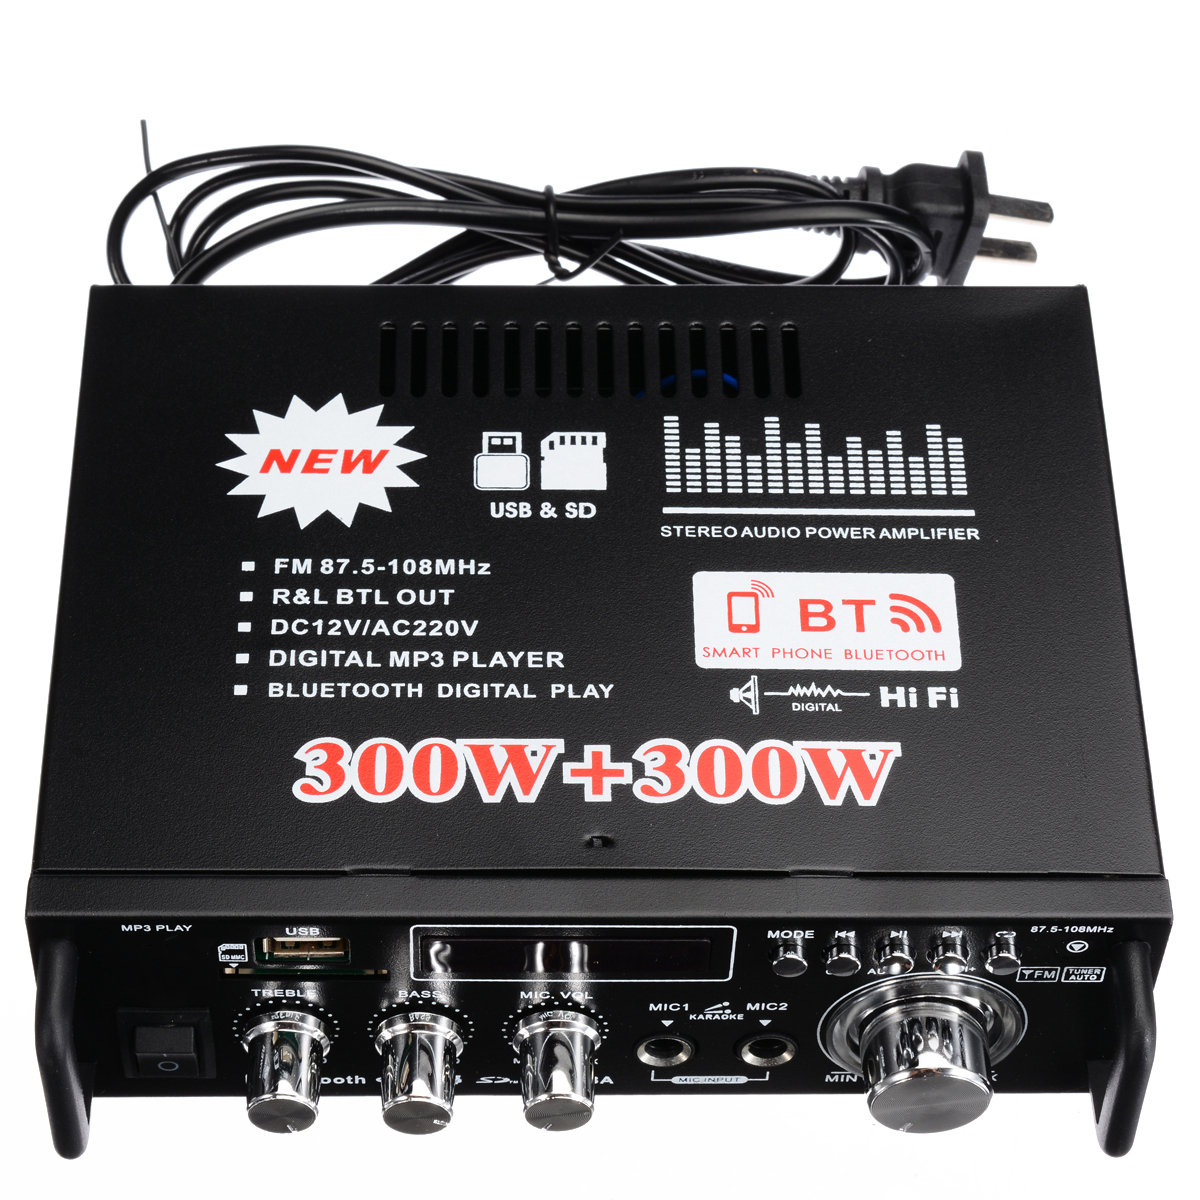 600W 2CH bluetooth Stereo Digital Power Amplifier AMP USB SD FM Stereo Radio For Car Home Theater Amplifiers in Amplifier from Consumer Electronics